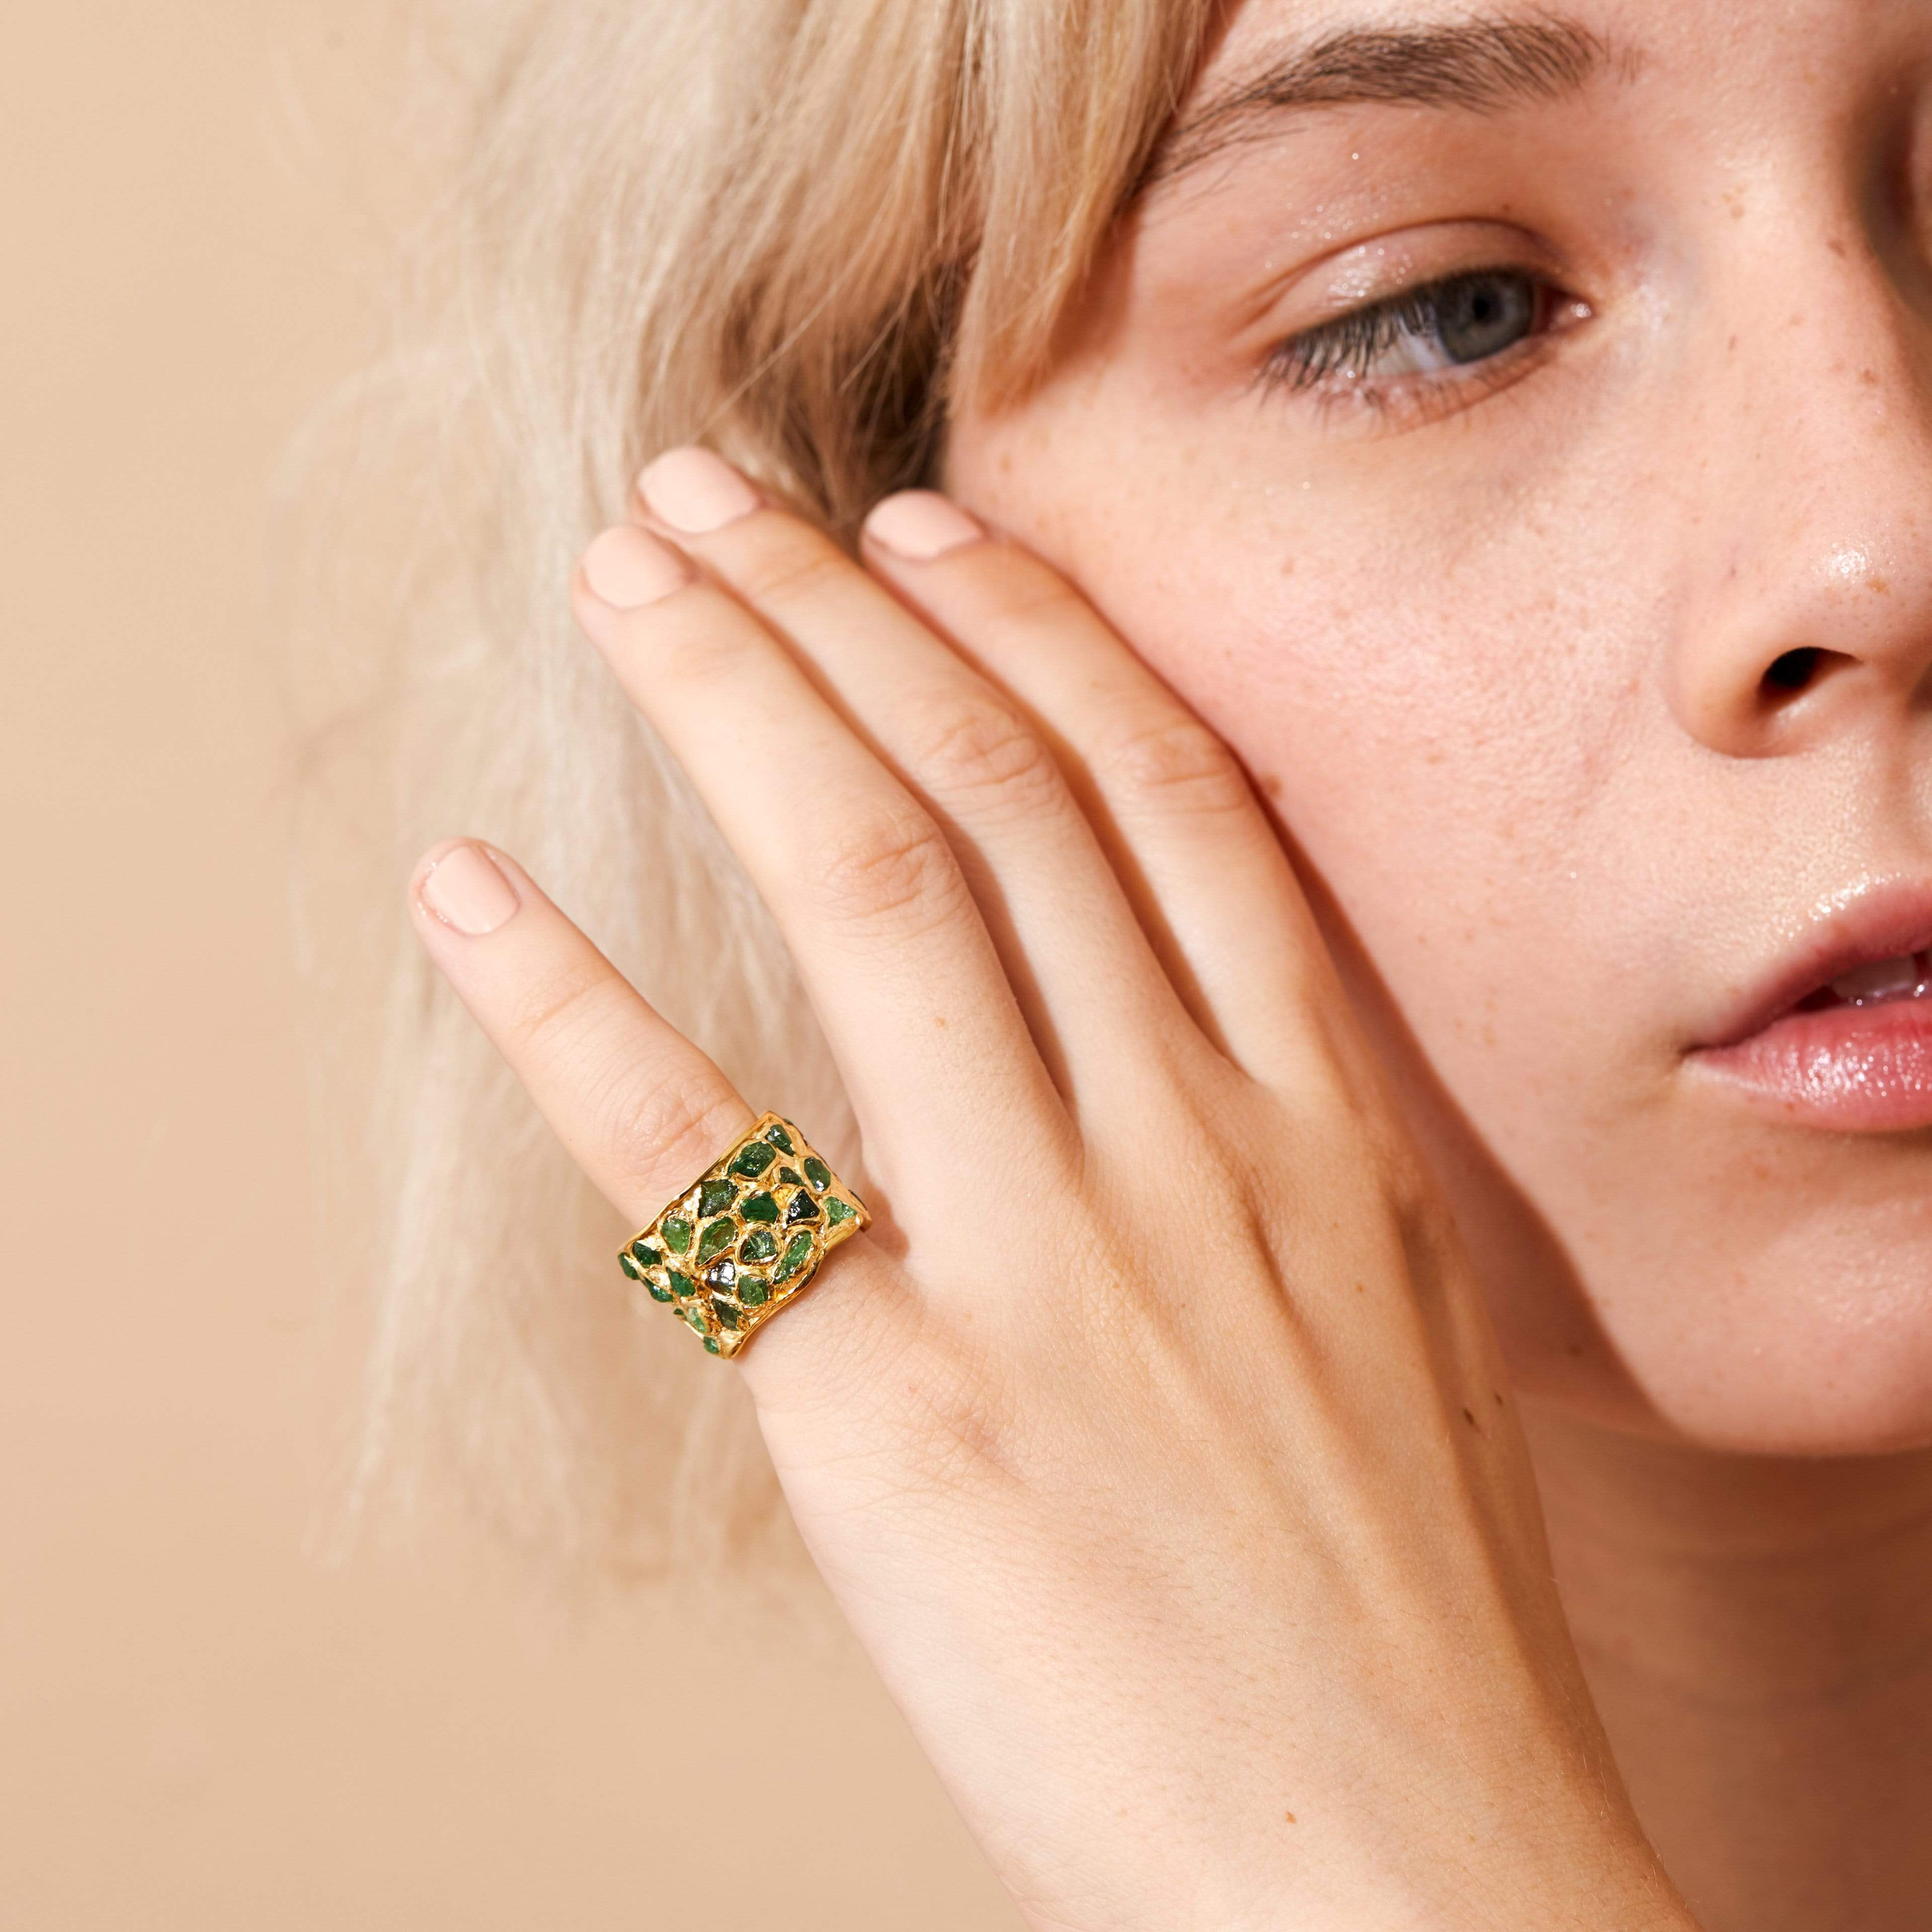 Alcina Grass Ring, ChromeDiopside, Gold, Handmade, spo-disabled, StoneColor:Green, Style:Everyday, Type:StainedGlass Ring